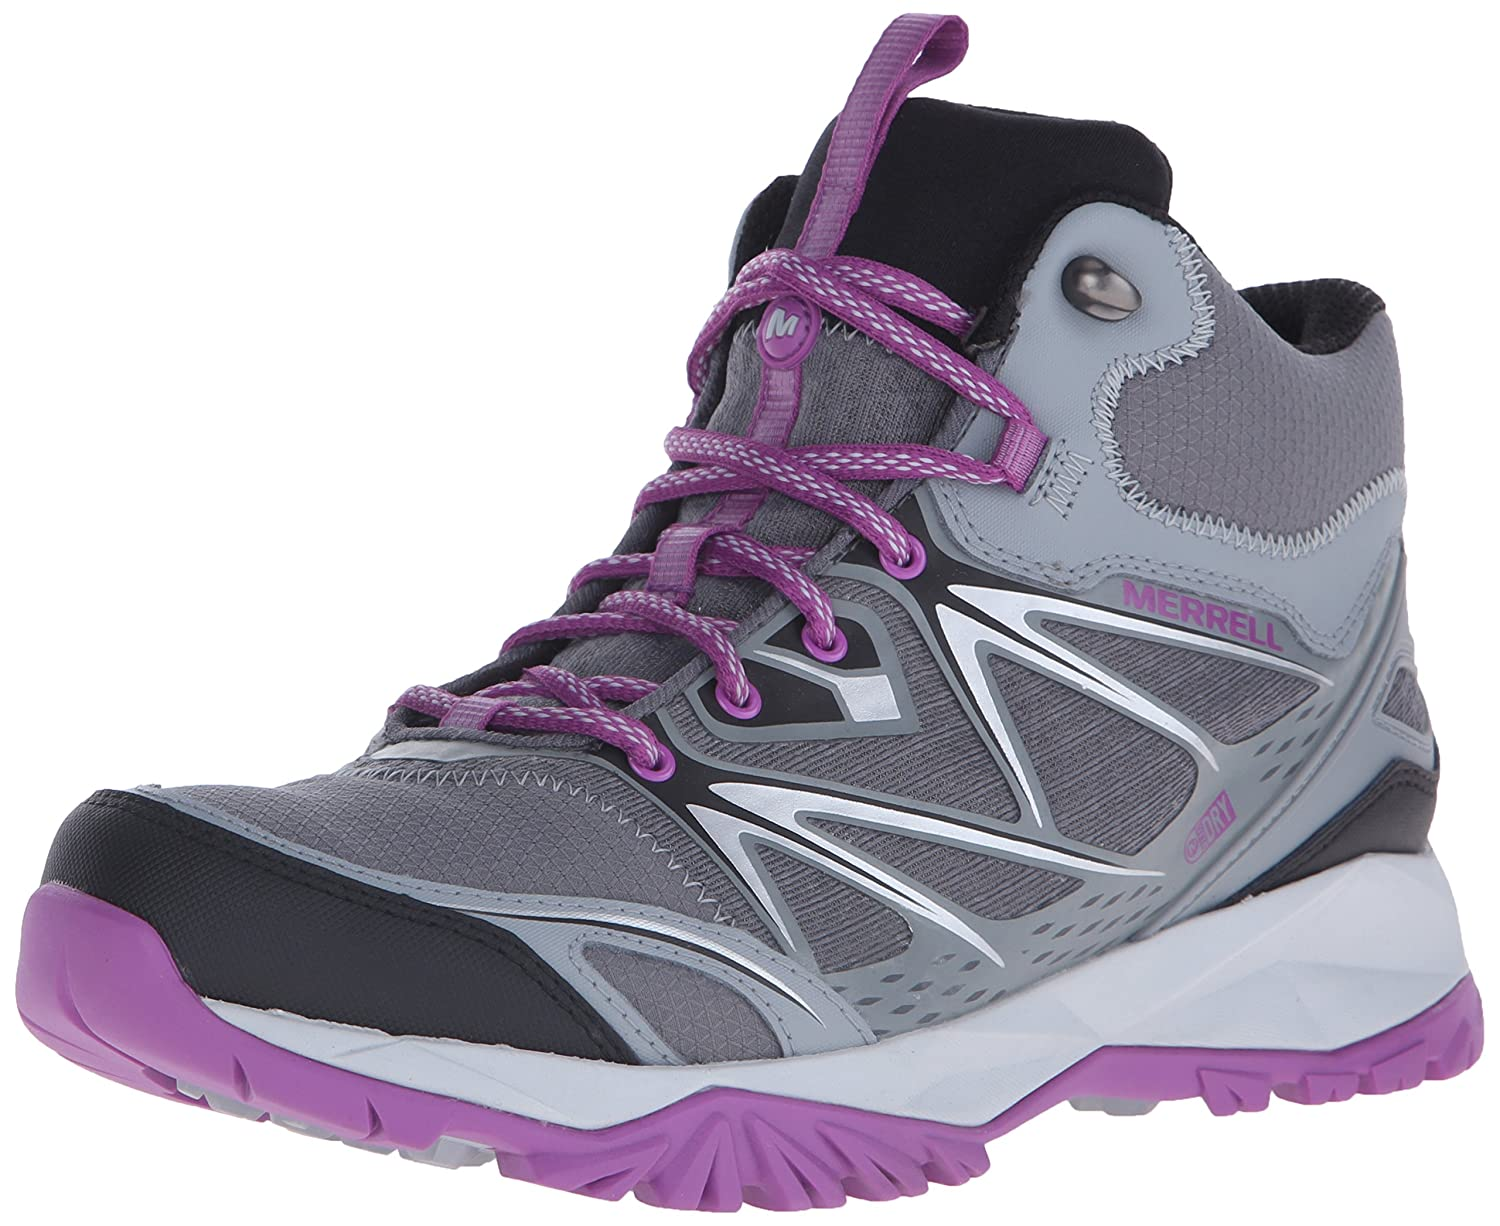 Merrell Women's Capra Bolt Mid Waterproof Hiking Boot B00YBBA5TU 6.5 B(M) US|Grey/Purple